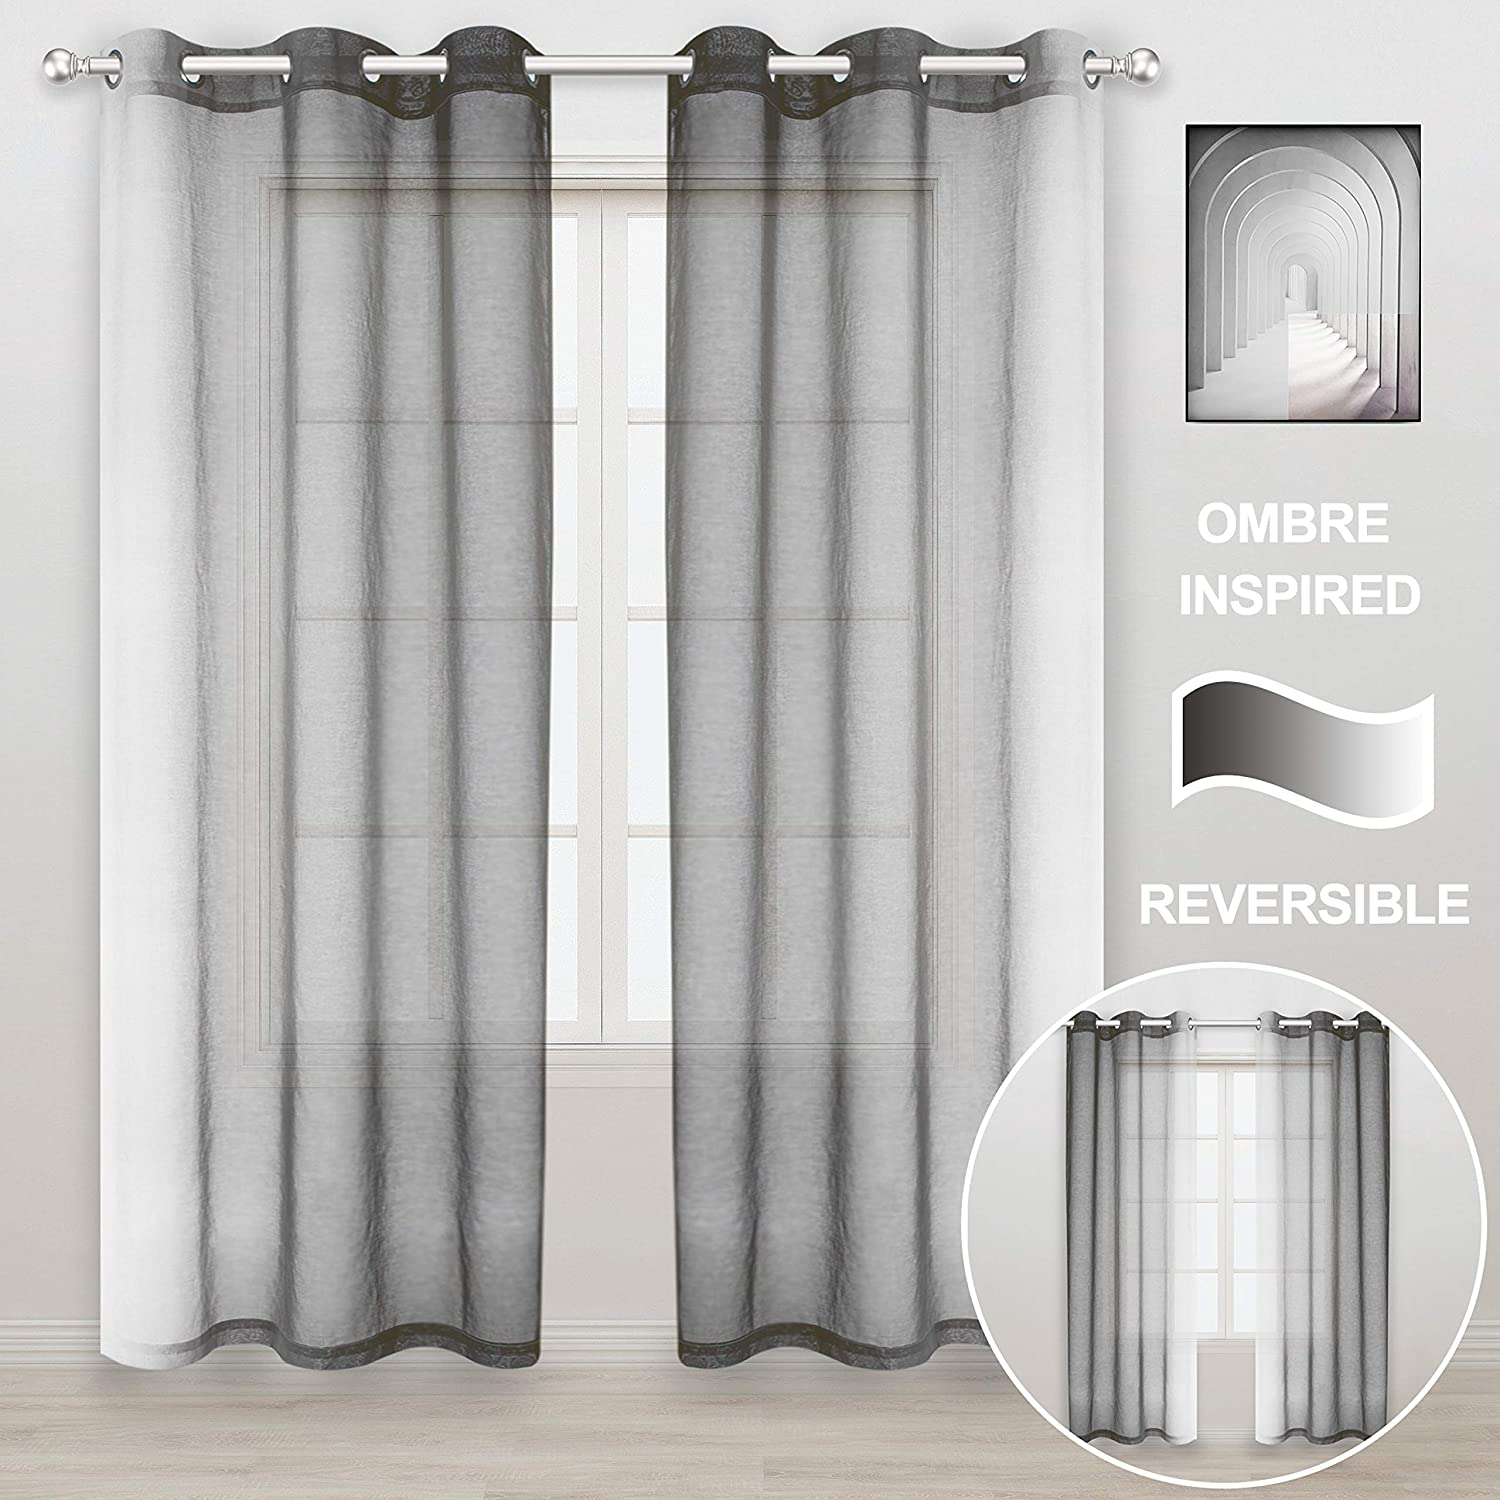 WONTEX Faux Linen 2 Tone Ombre Sheer Curtains for Living Room/Bedroom, 42 x 84 Inch Long, Grey and White – Light Filtering and Privacy Gradient Curtain, Grommet Semi Sheer Voile, Set of 2 Panels